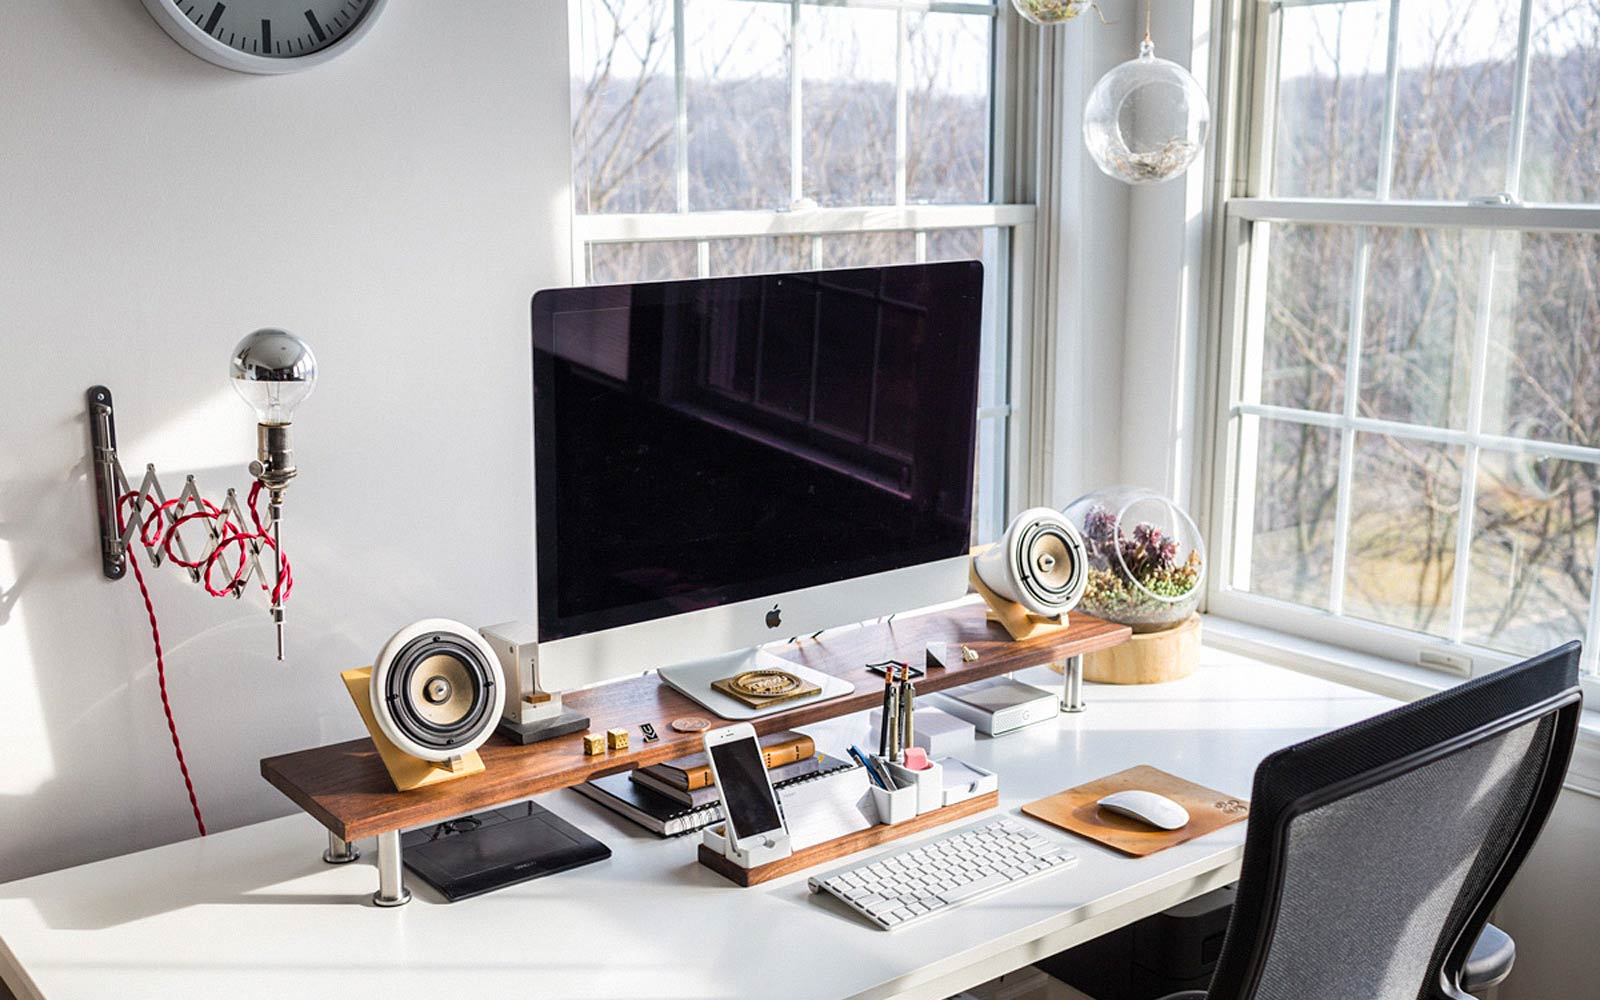 How to Decorate Your Desk  The GentleManual  A Handbook